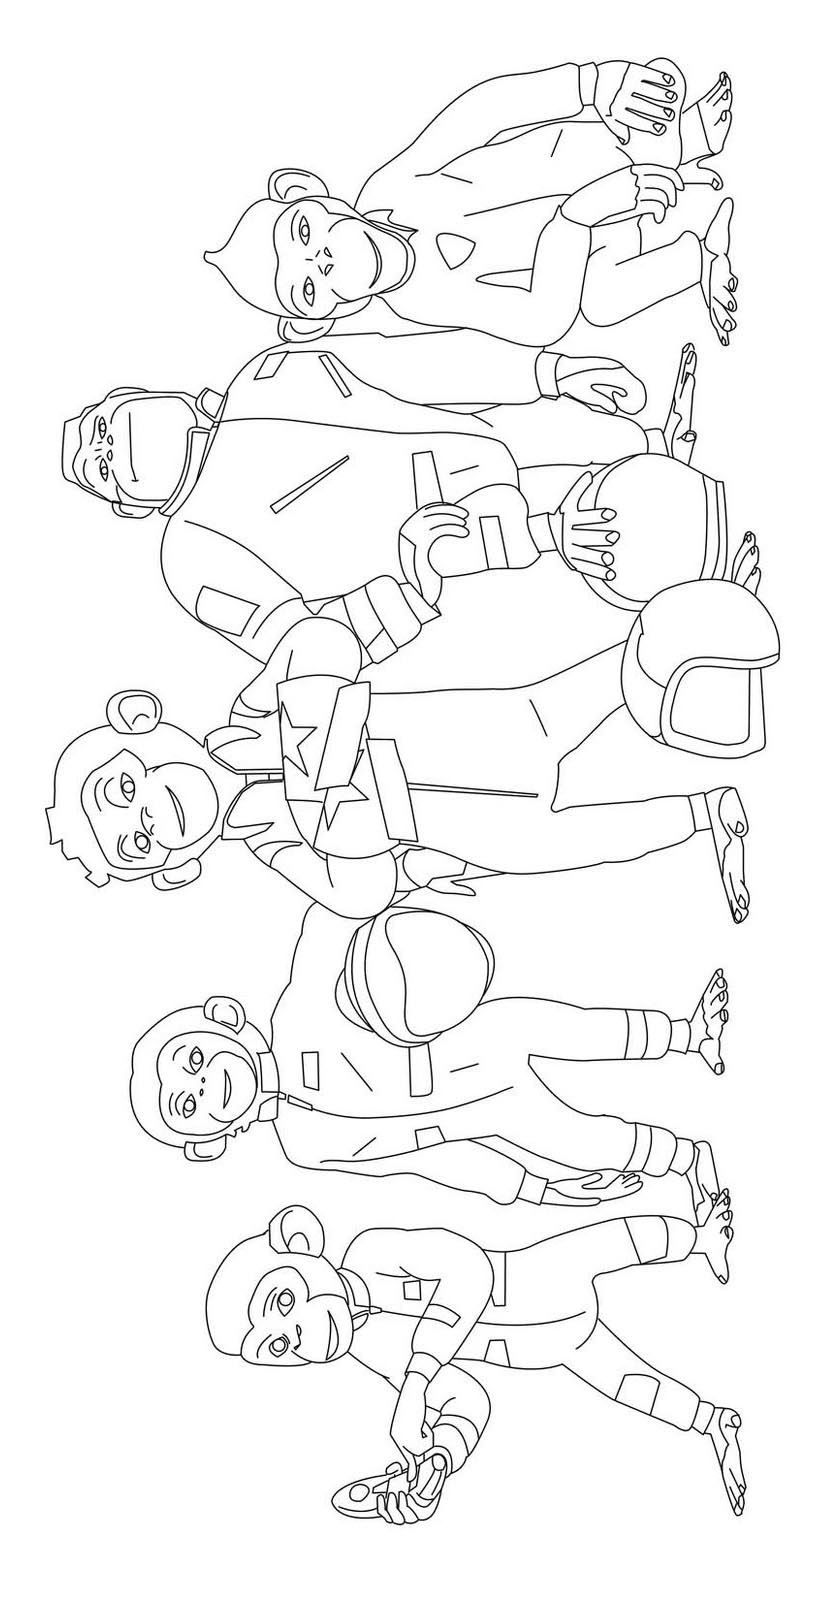 Chimpanzees In Space coloring page to download for free